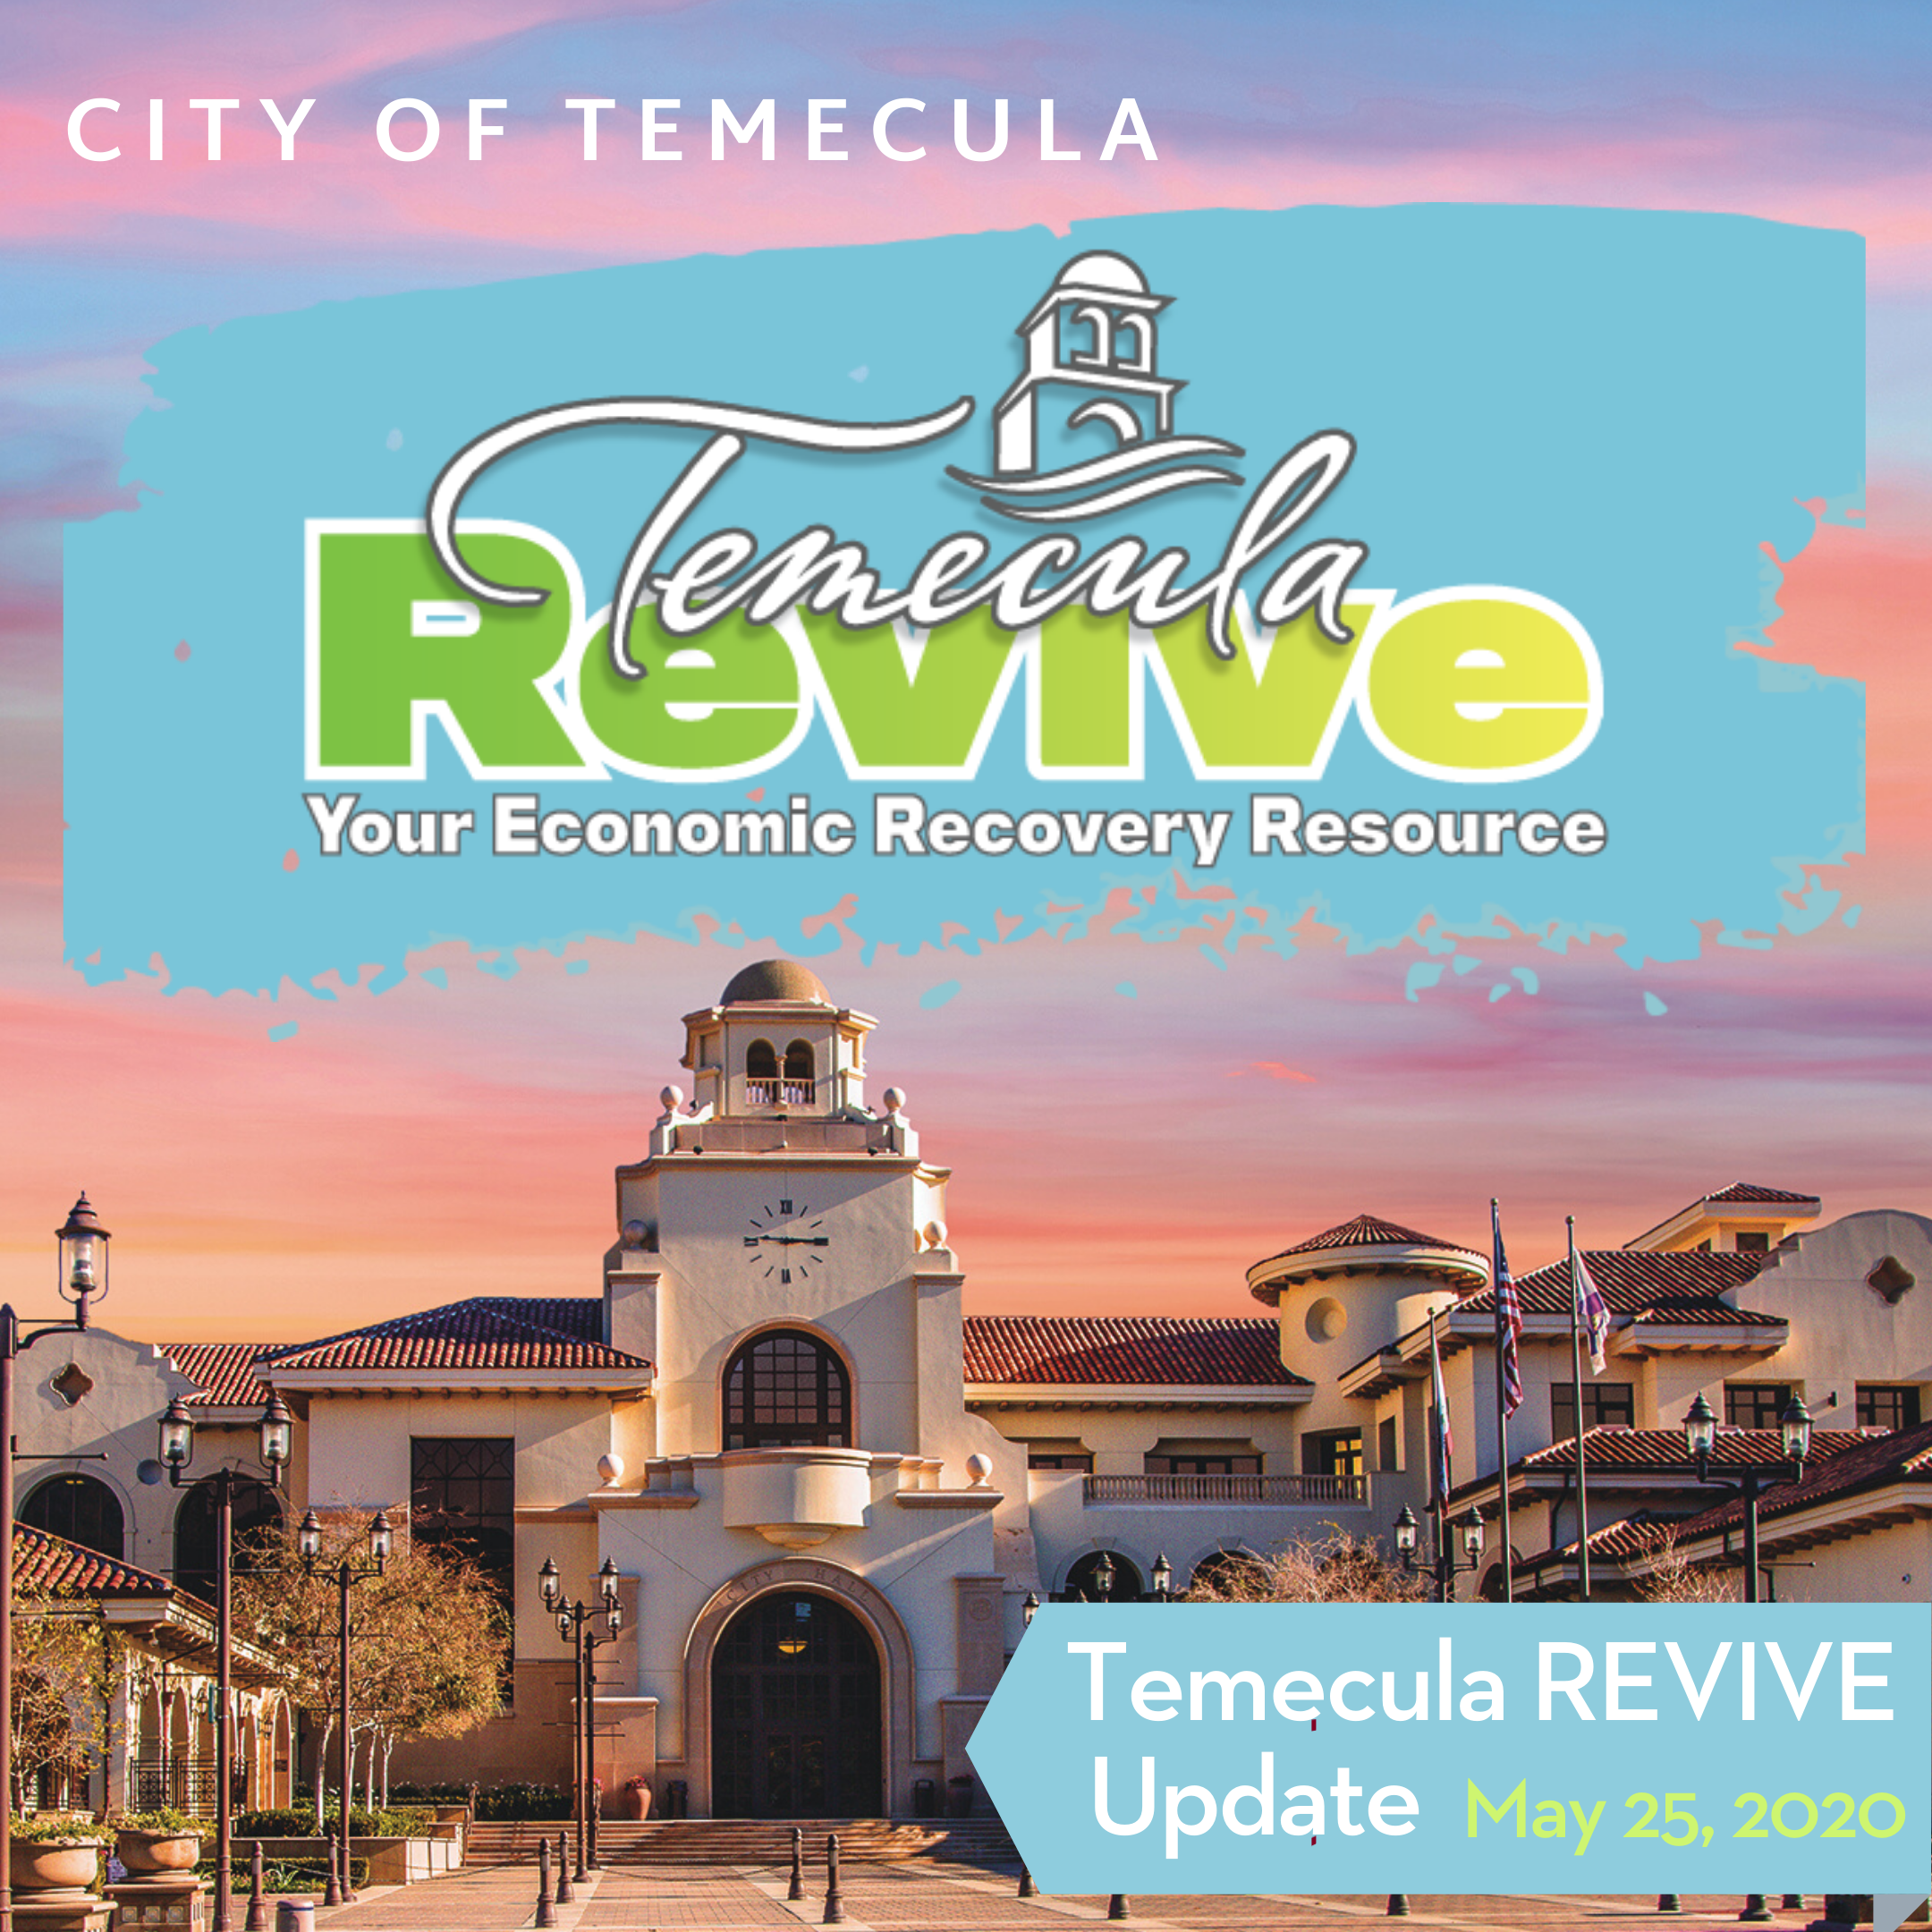 Revive_Coronavirus Update may 25 2020